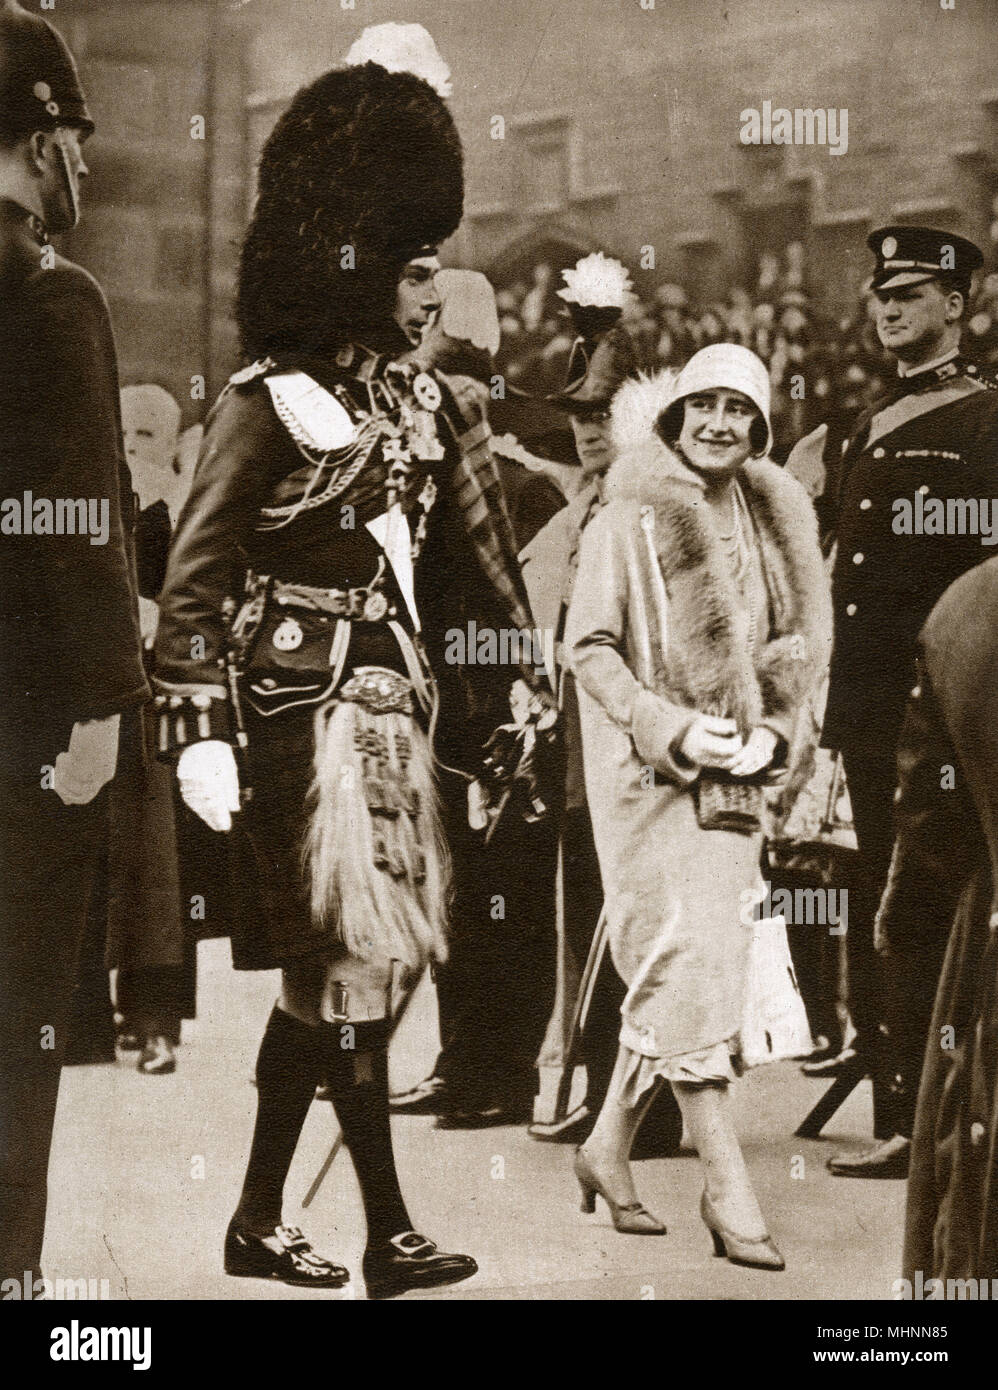 Late in May 1929, the Duke and Duchess of York visited Edinburgh, Scotland. This photograph shows the Duke, in the full Dress of the Cameron Highlanders, walking with the Duchess to a service at St. Giles Cathedral.      Date: 1929 - Stock Image